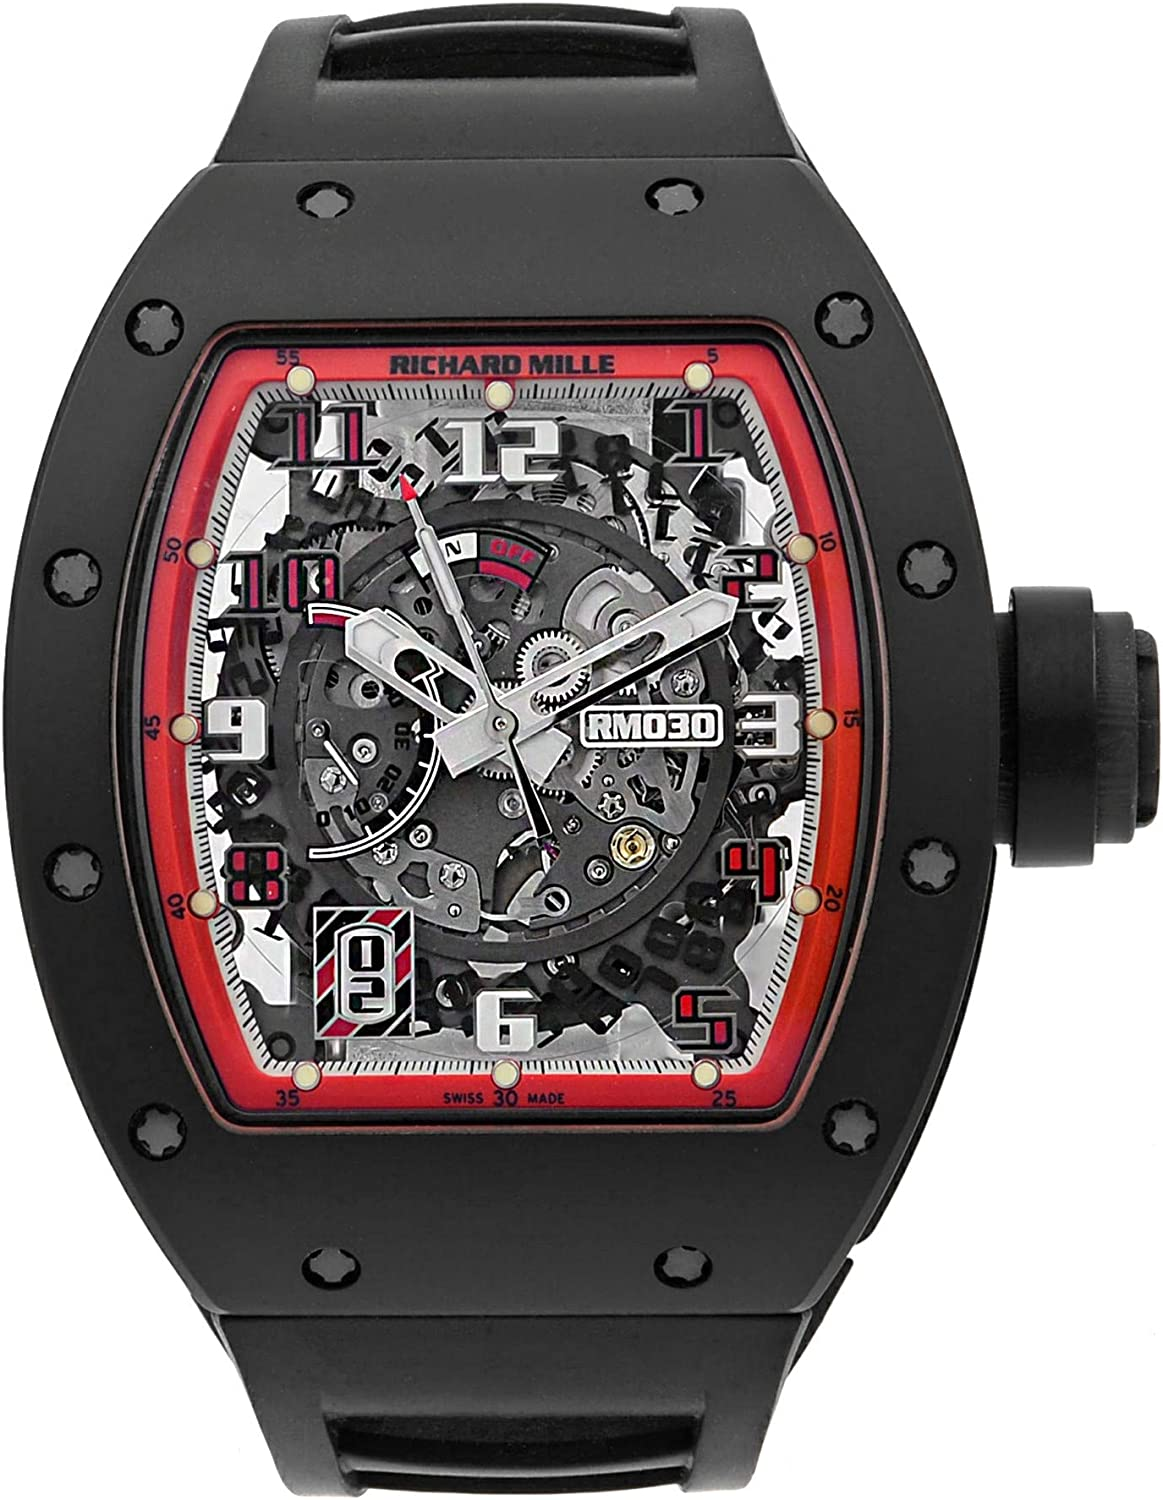 Richard Mille RM 030 Automatic-self-Wind Male Watch RM030 (Certified Pre-Owned)